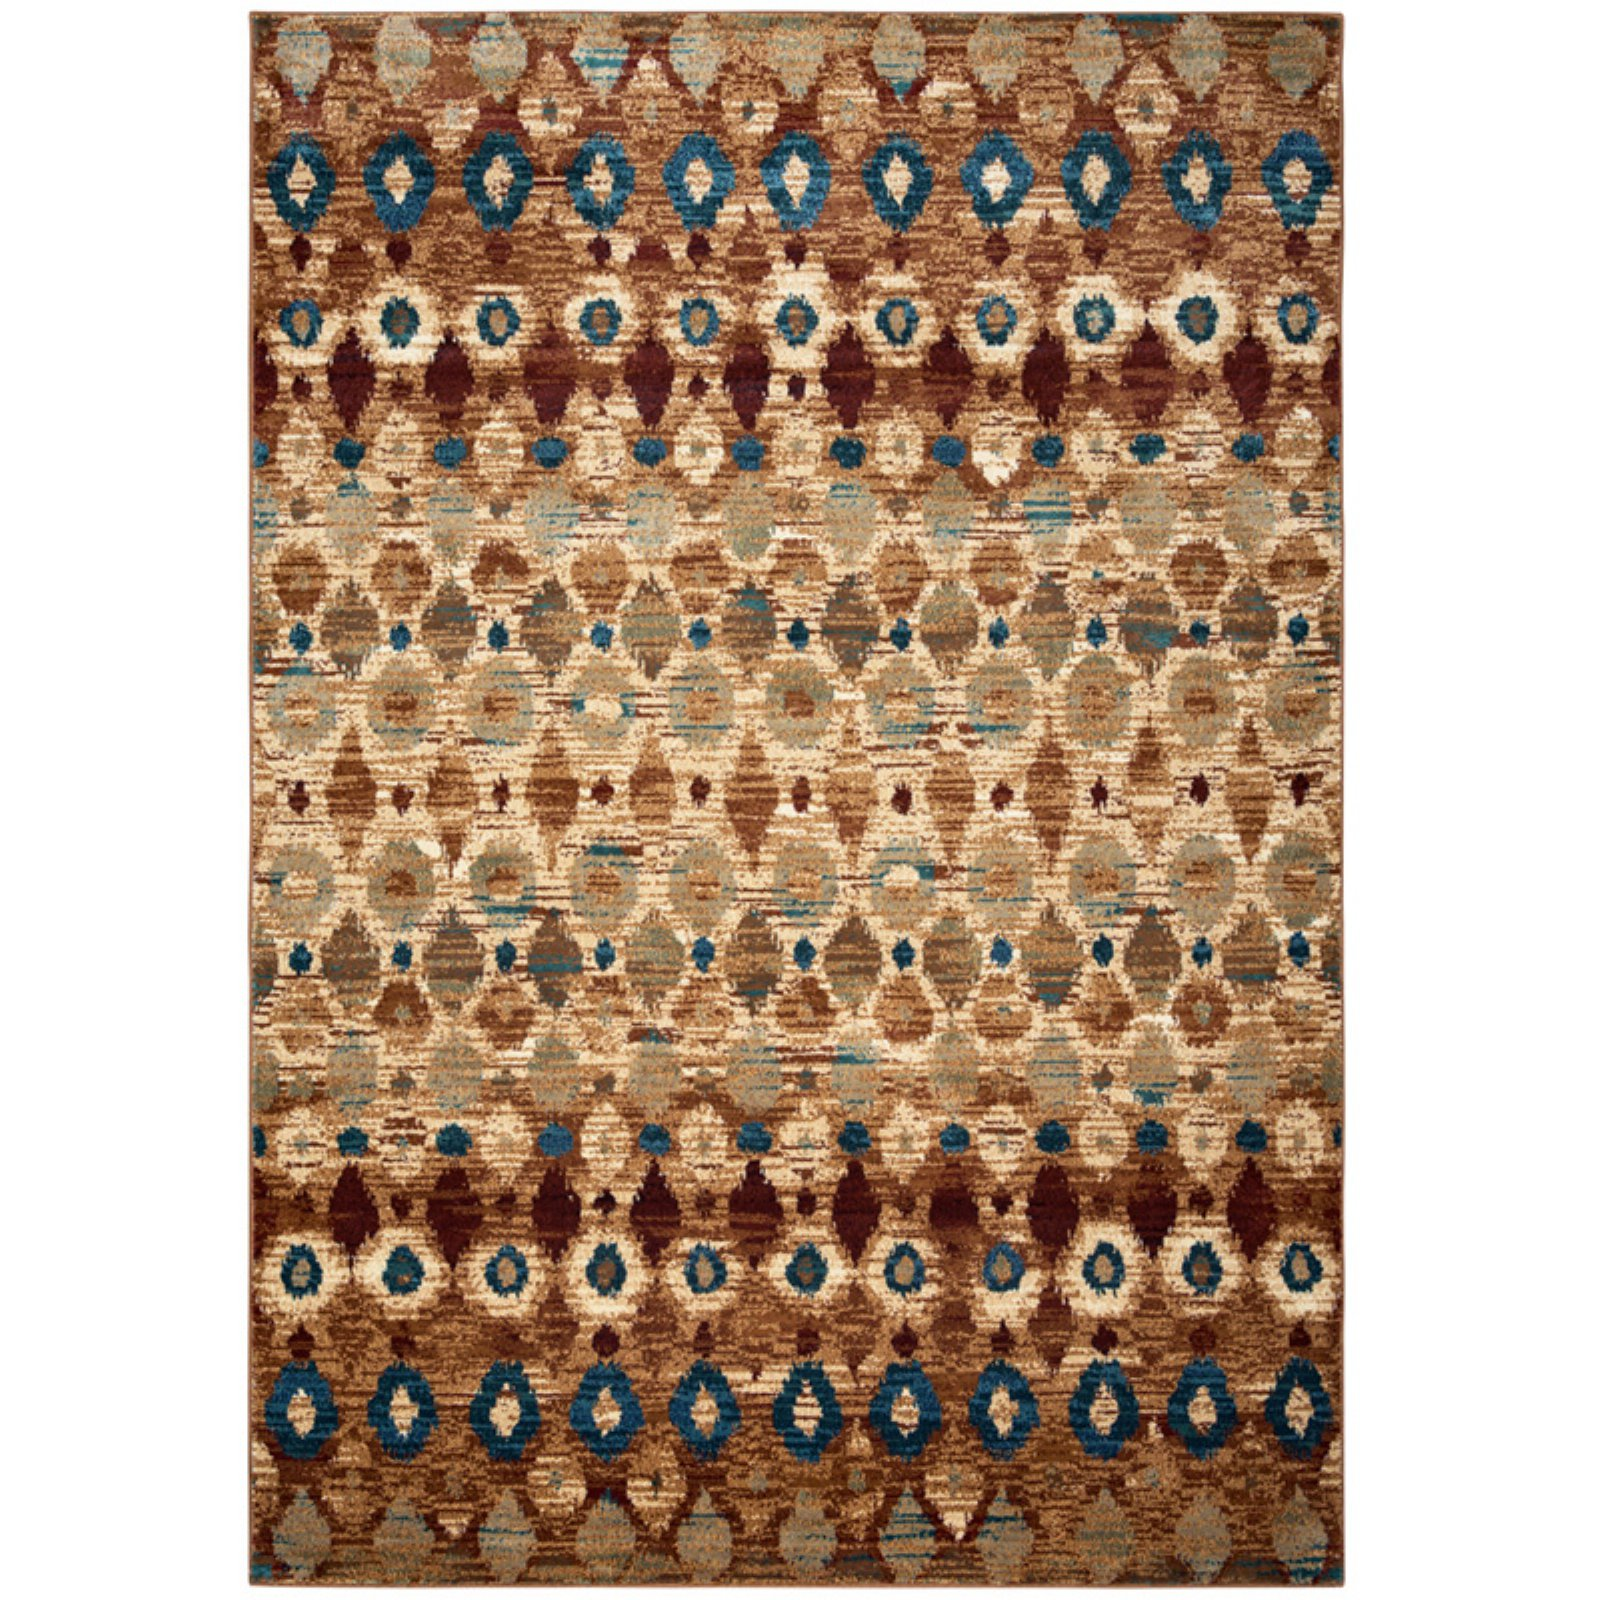 "Rizzy Home Tan/Camel/Brown Rug In Polypropylene 9'2"" x 12'6"""